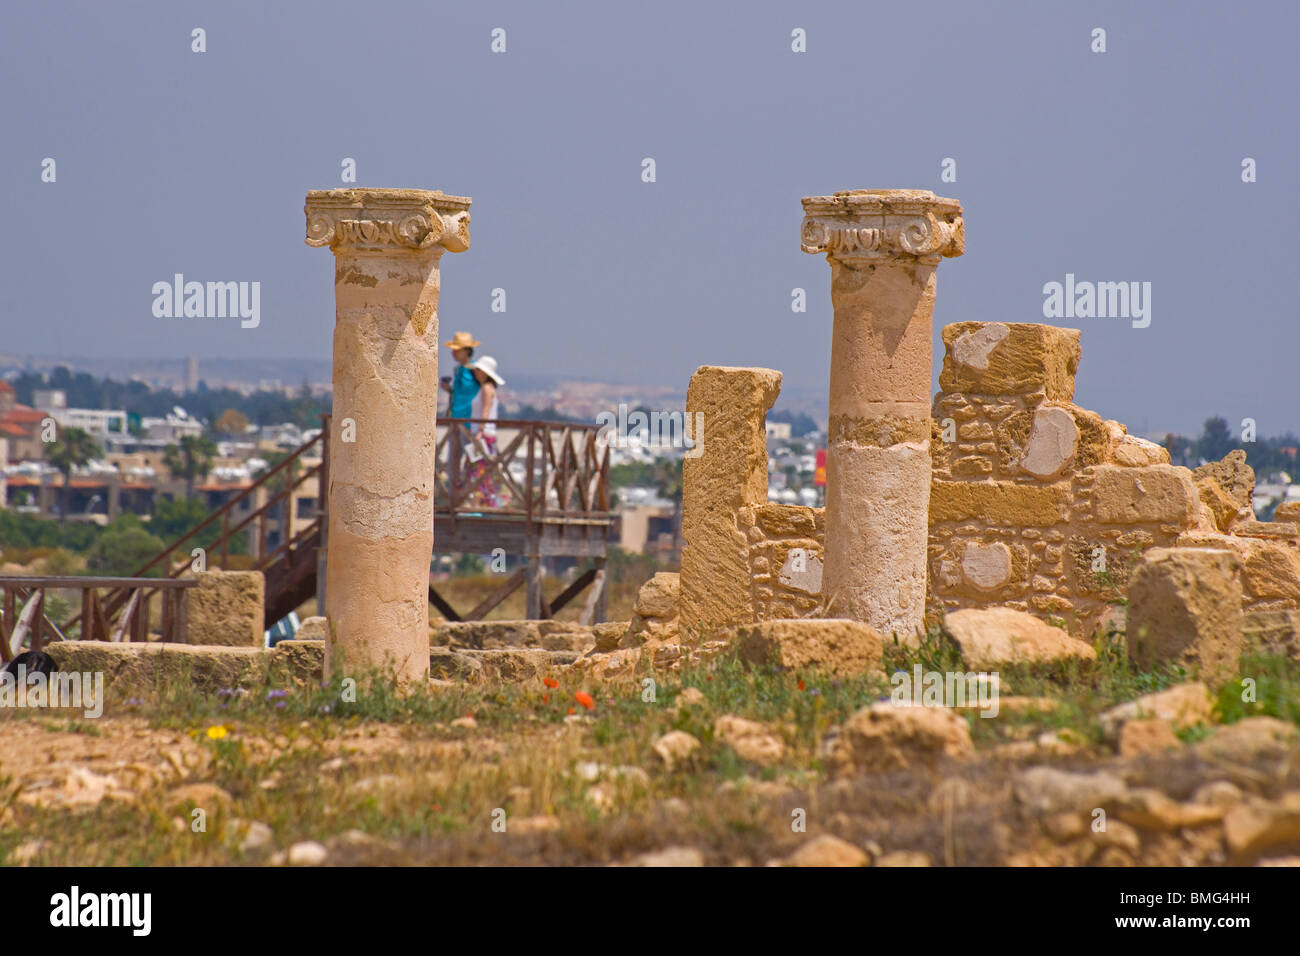 Cyprus Paphos, pafos, Pillars, district archaelogical museum, world heritage site. - Stock Image